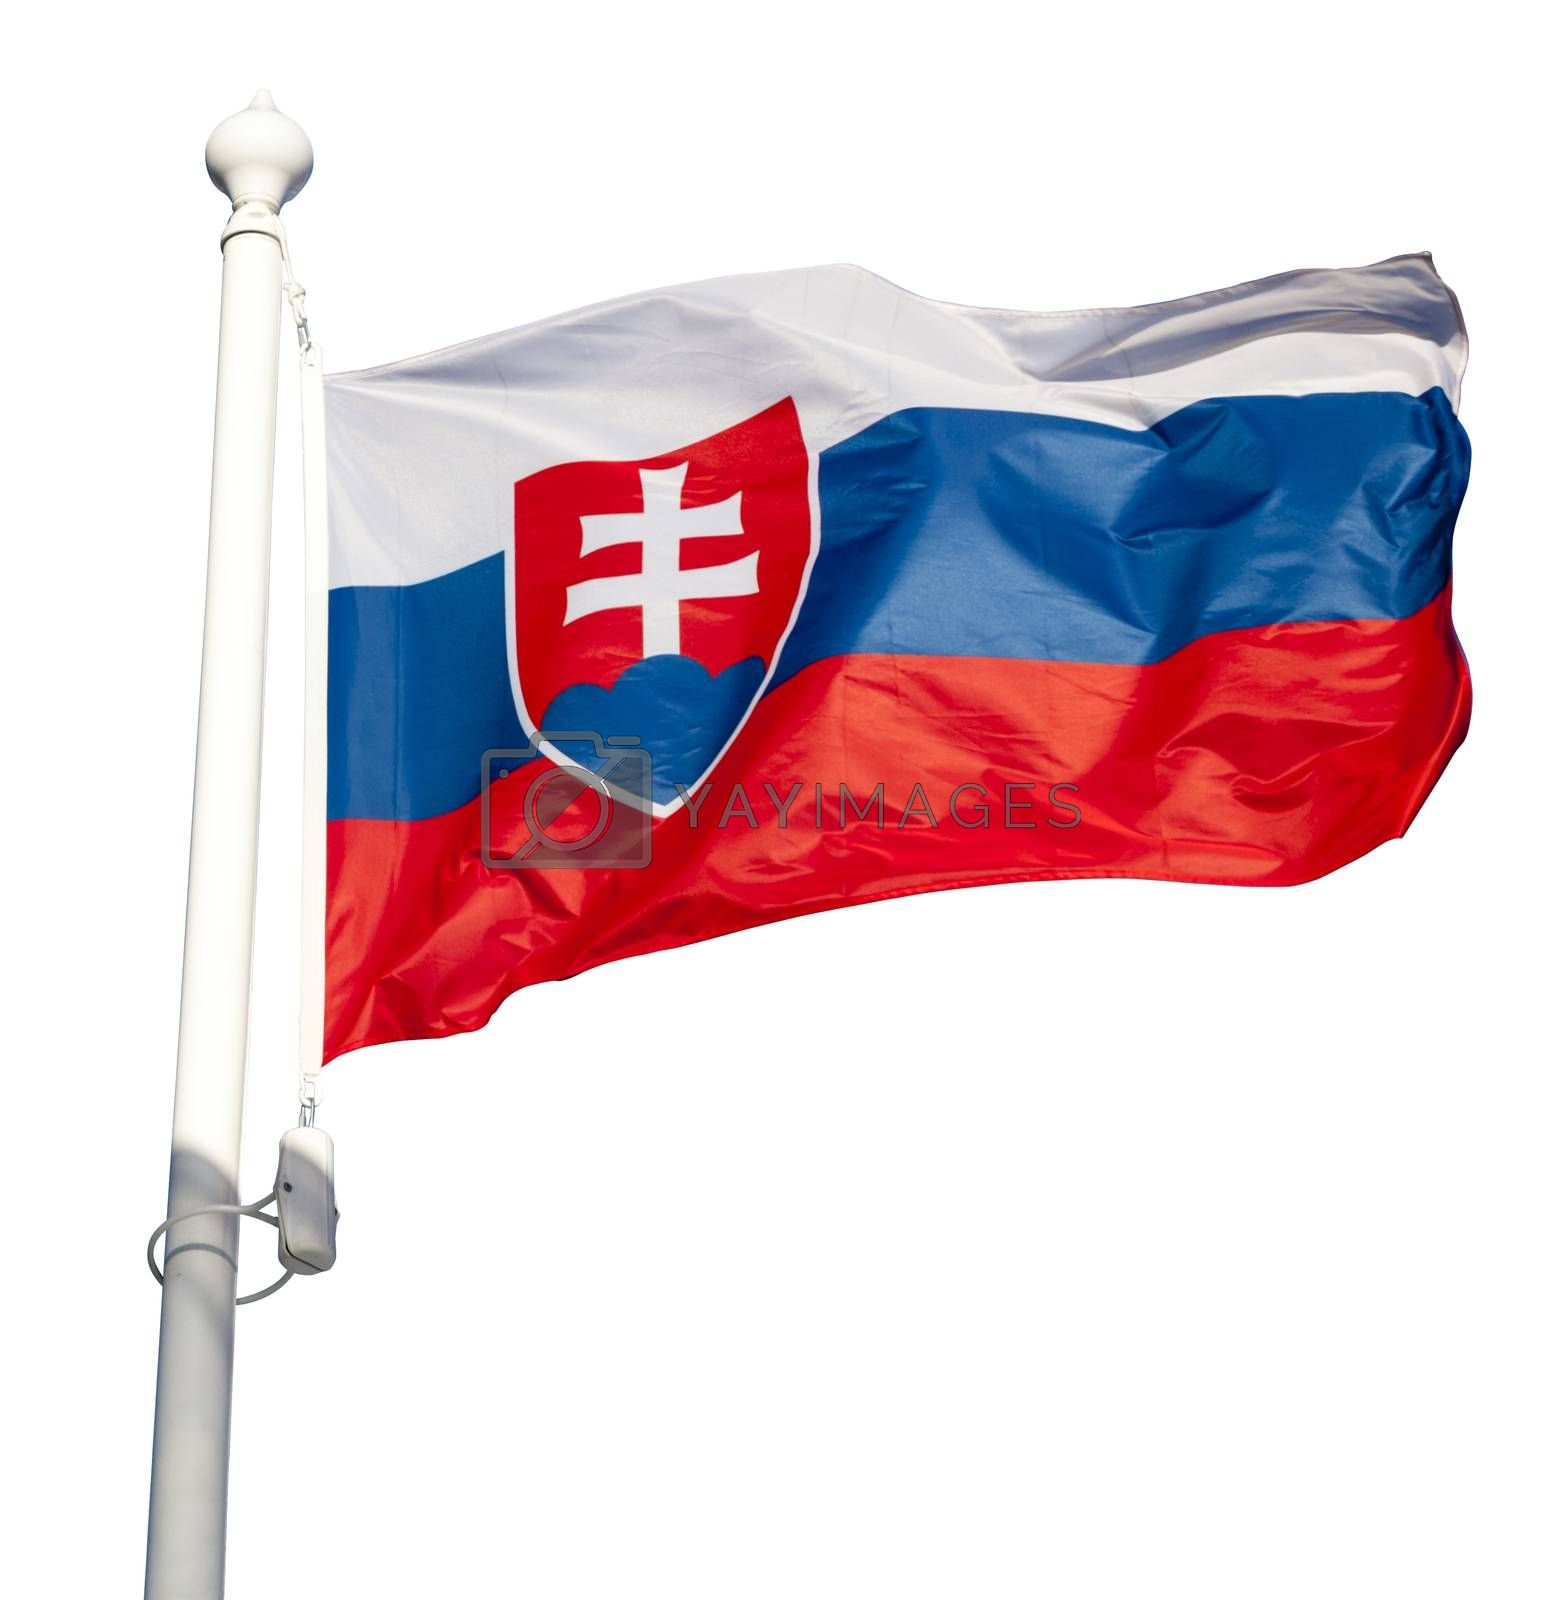 Waving flag of Slovakia by ints